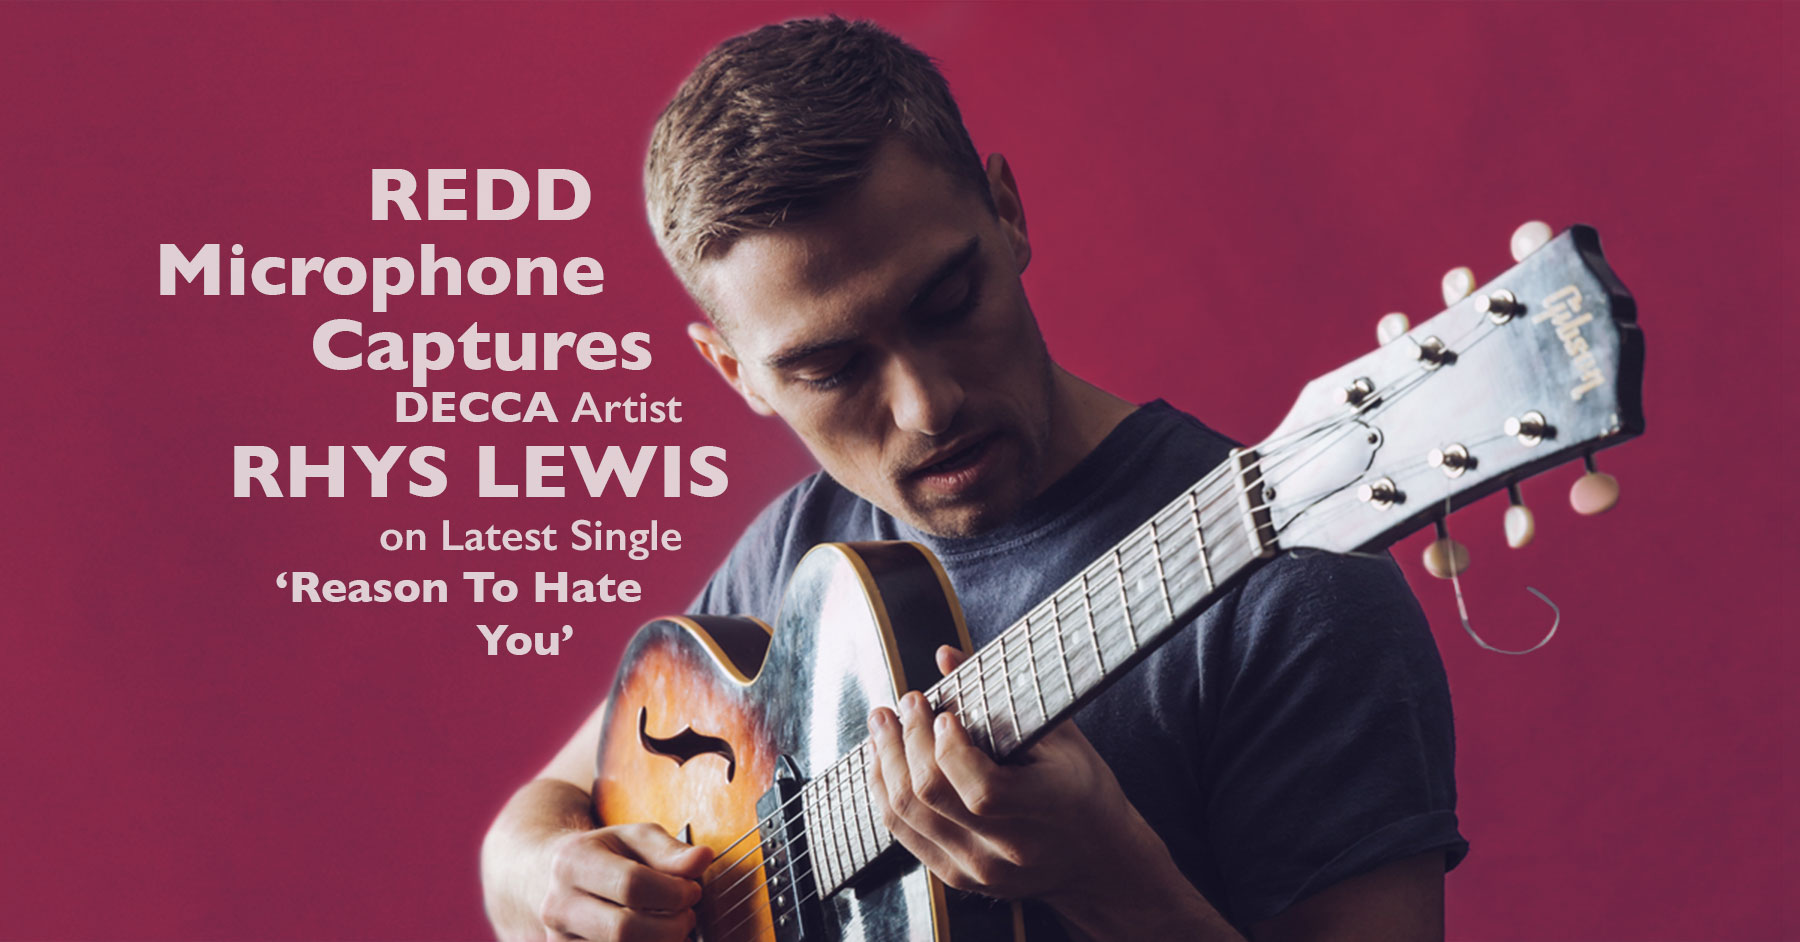 REDD Microphone Captures DECCA Artist Rhys Lewis on Latest Single